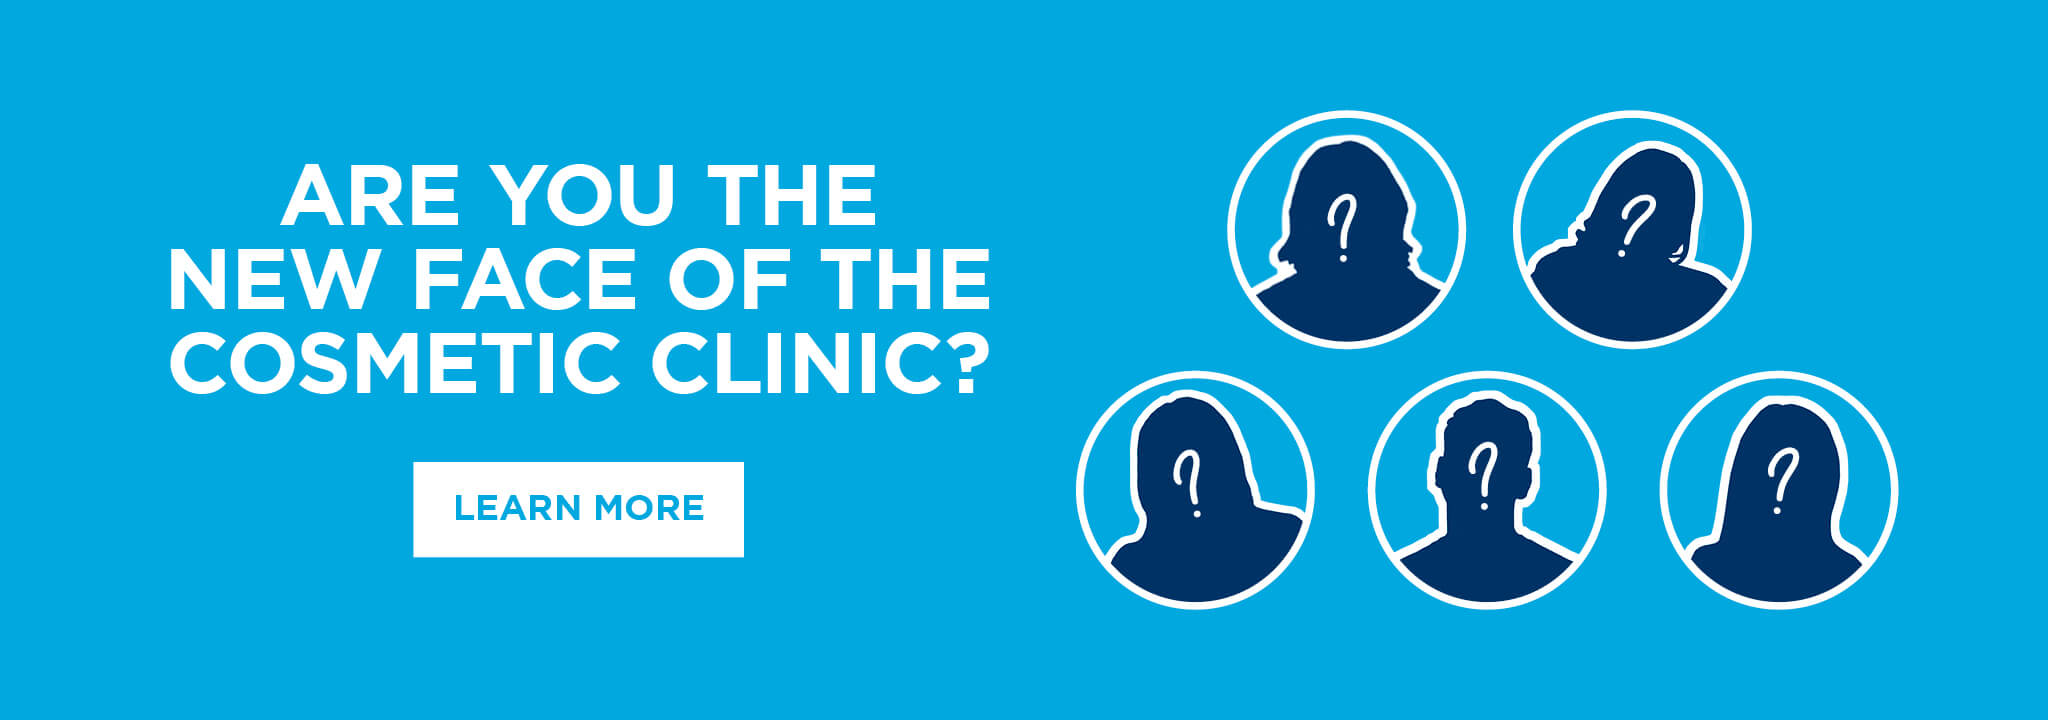 Are you the new face of The Cosmetic Clinic?